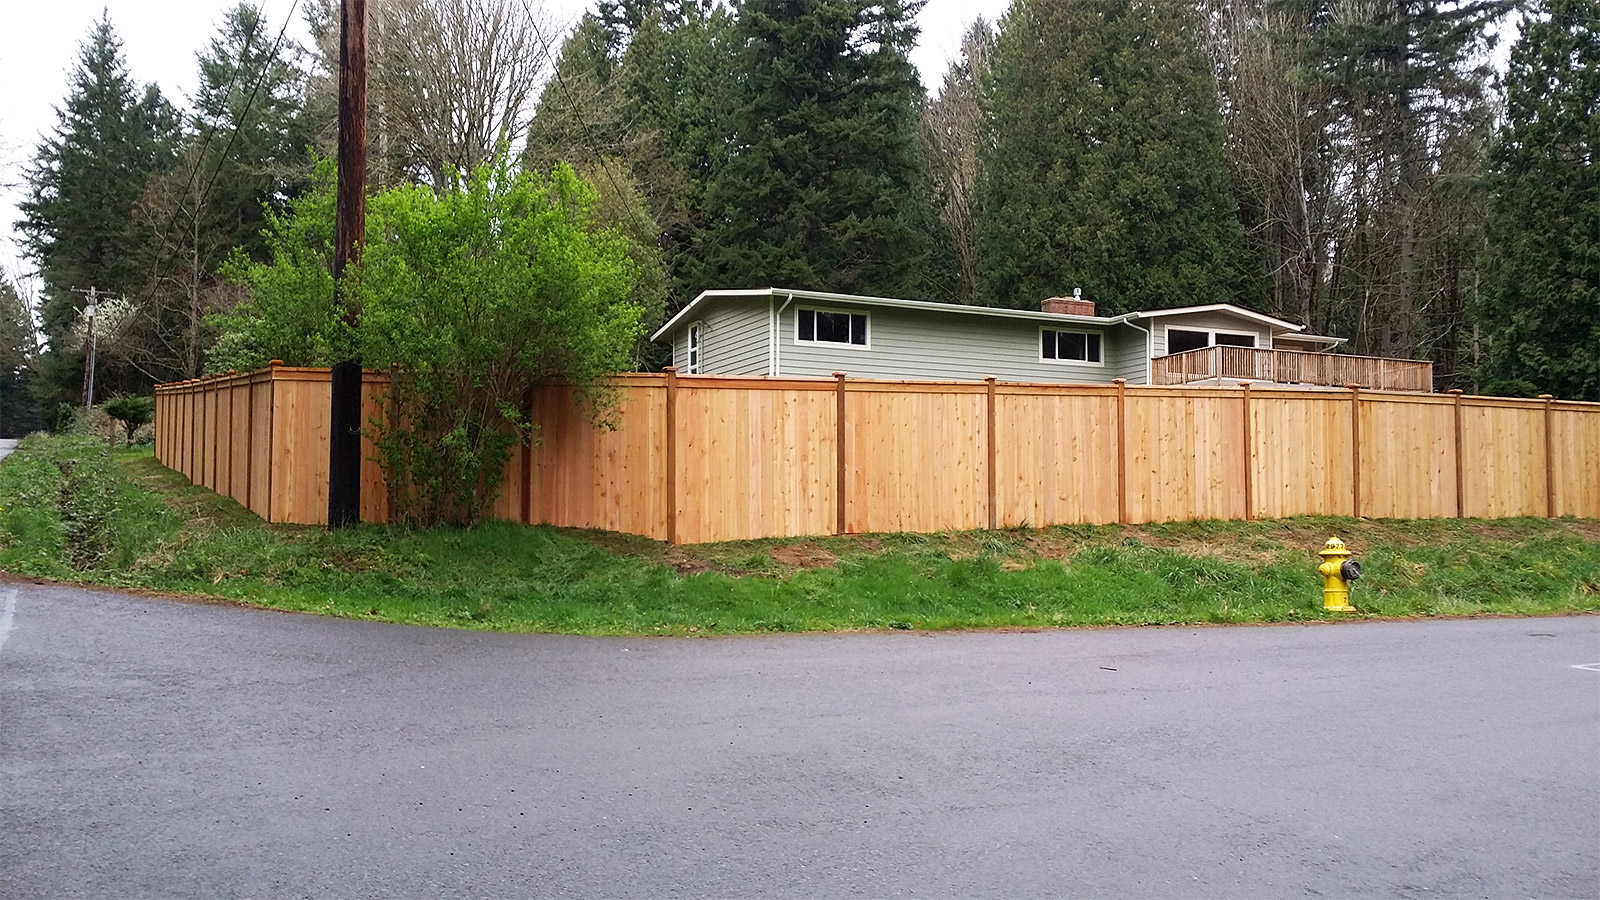 6ft Tall Cedar Panel Fence with 2x4 Cap and Trim